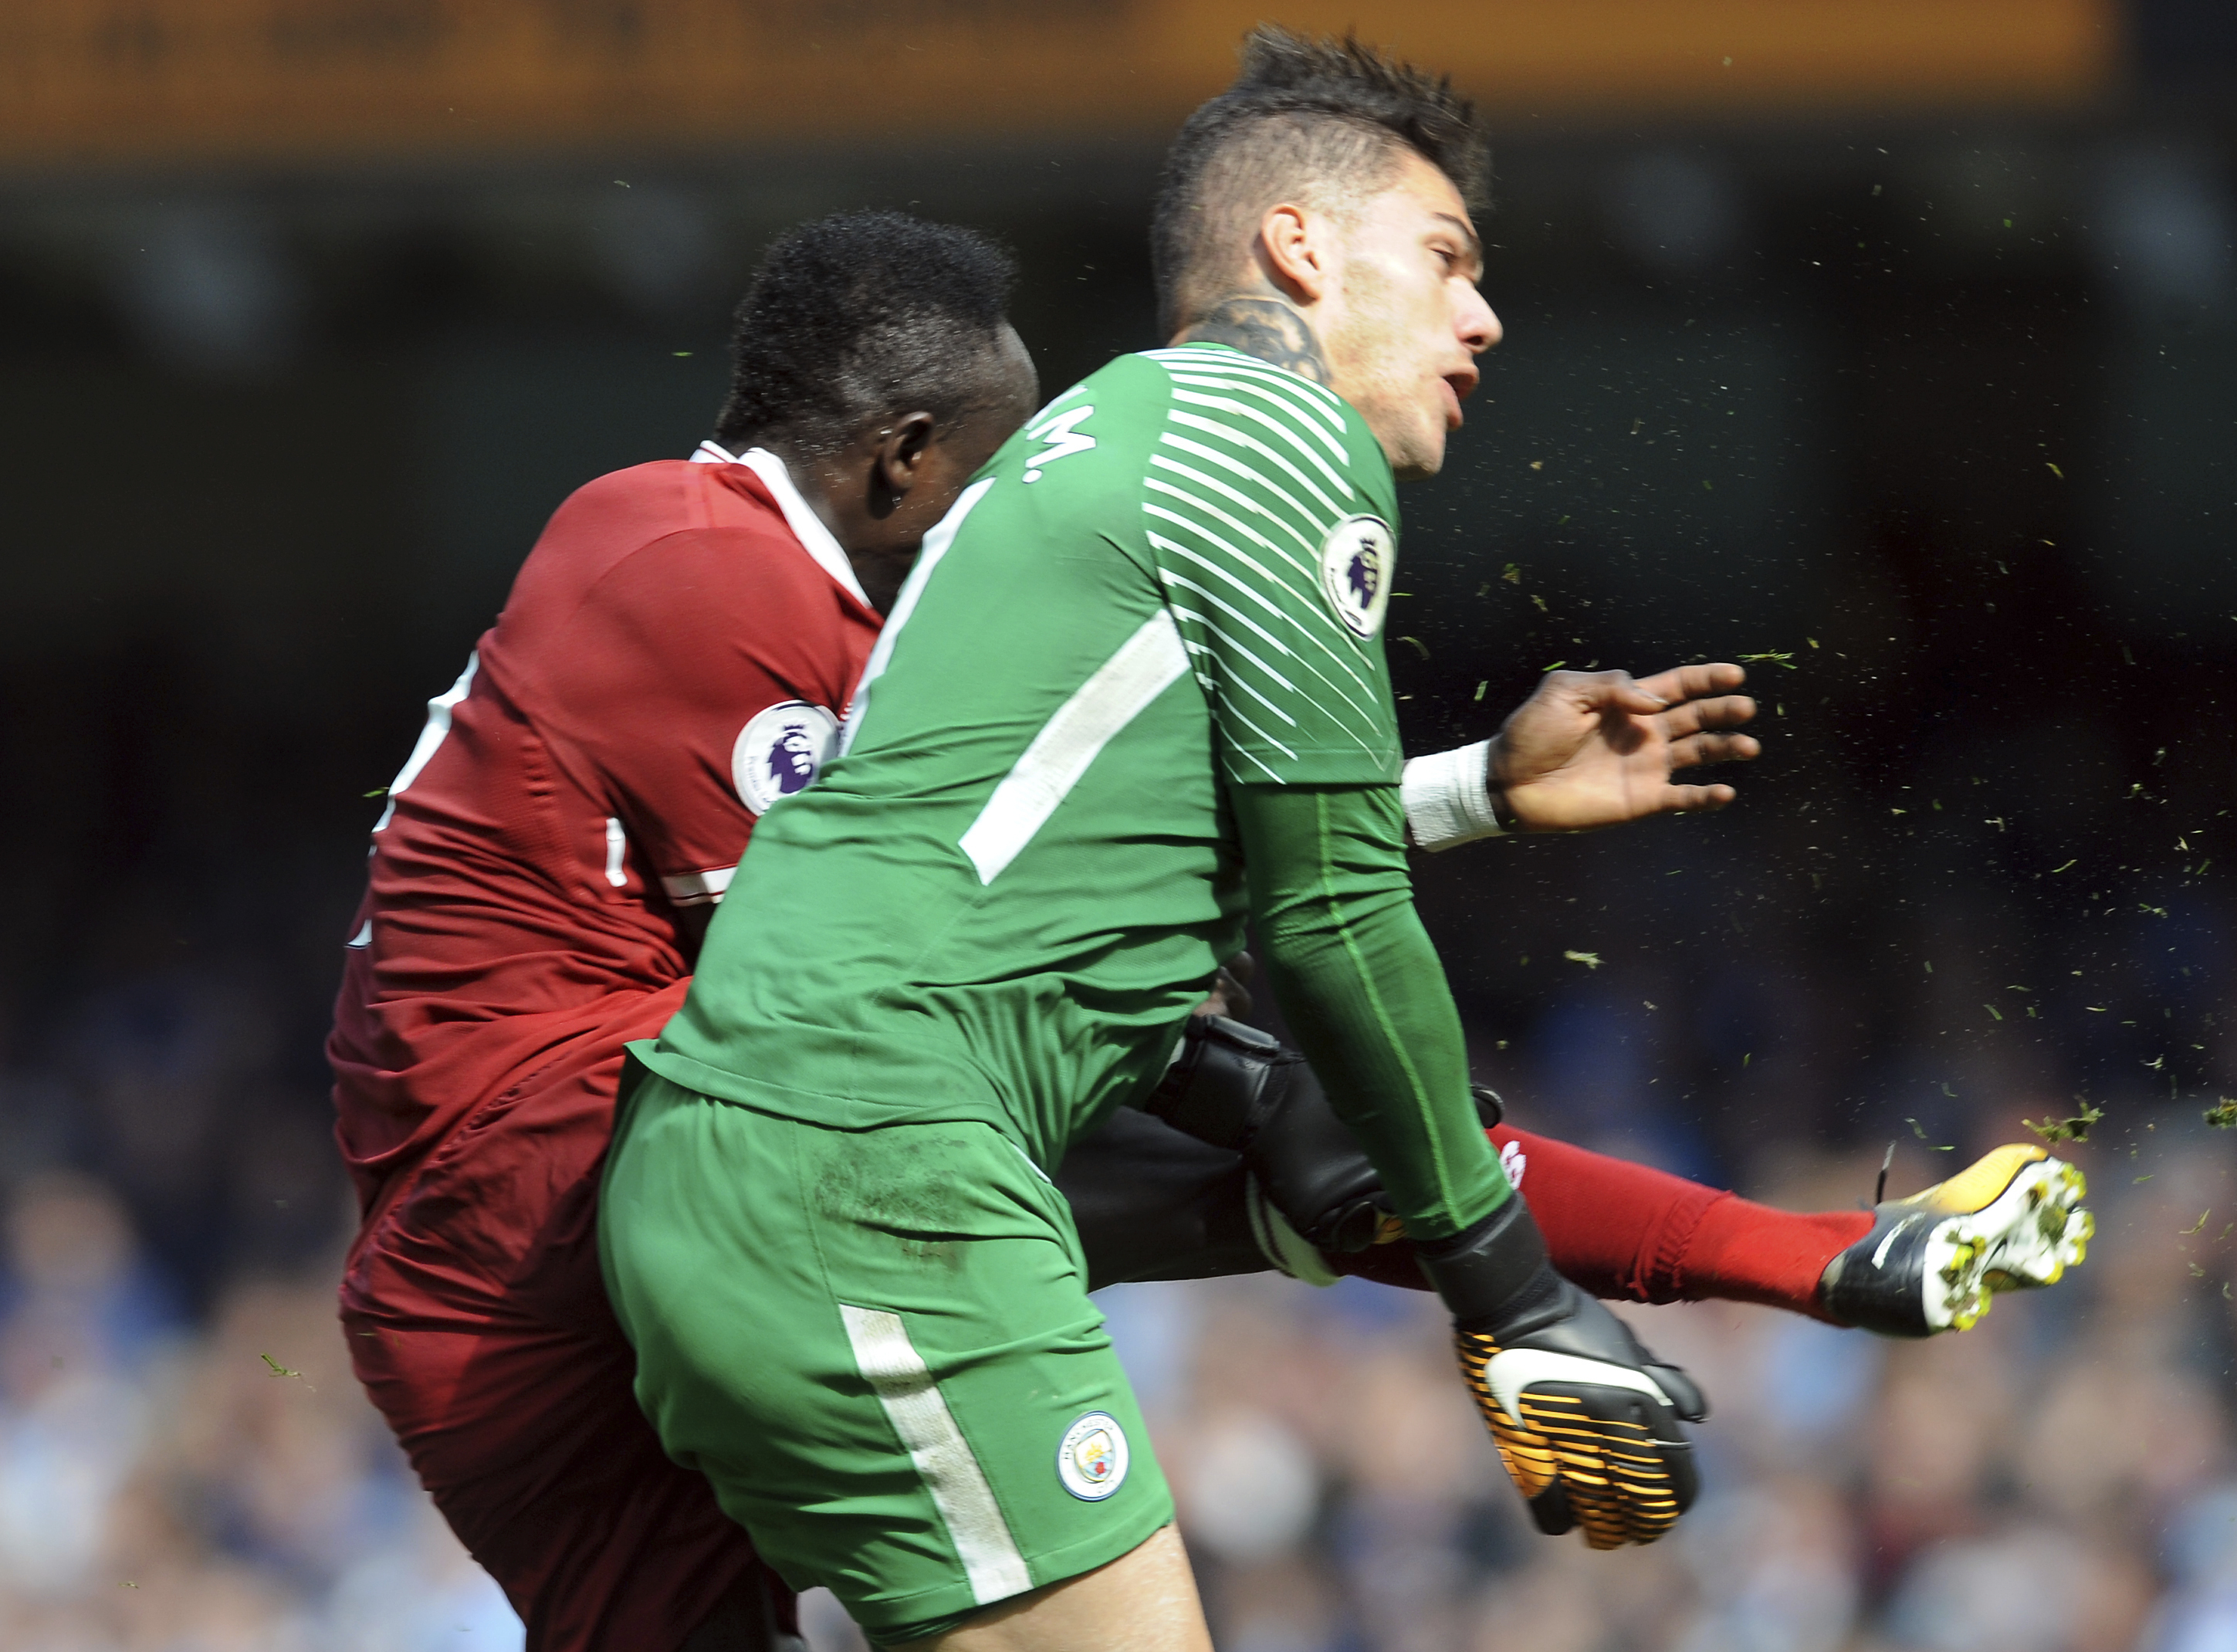 Sadio Mane Sends Ederson A Classy Message After Kicking Him In The